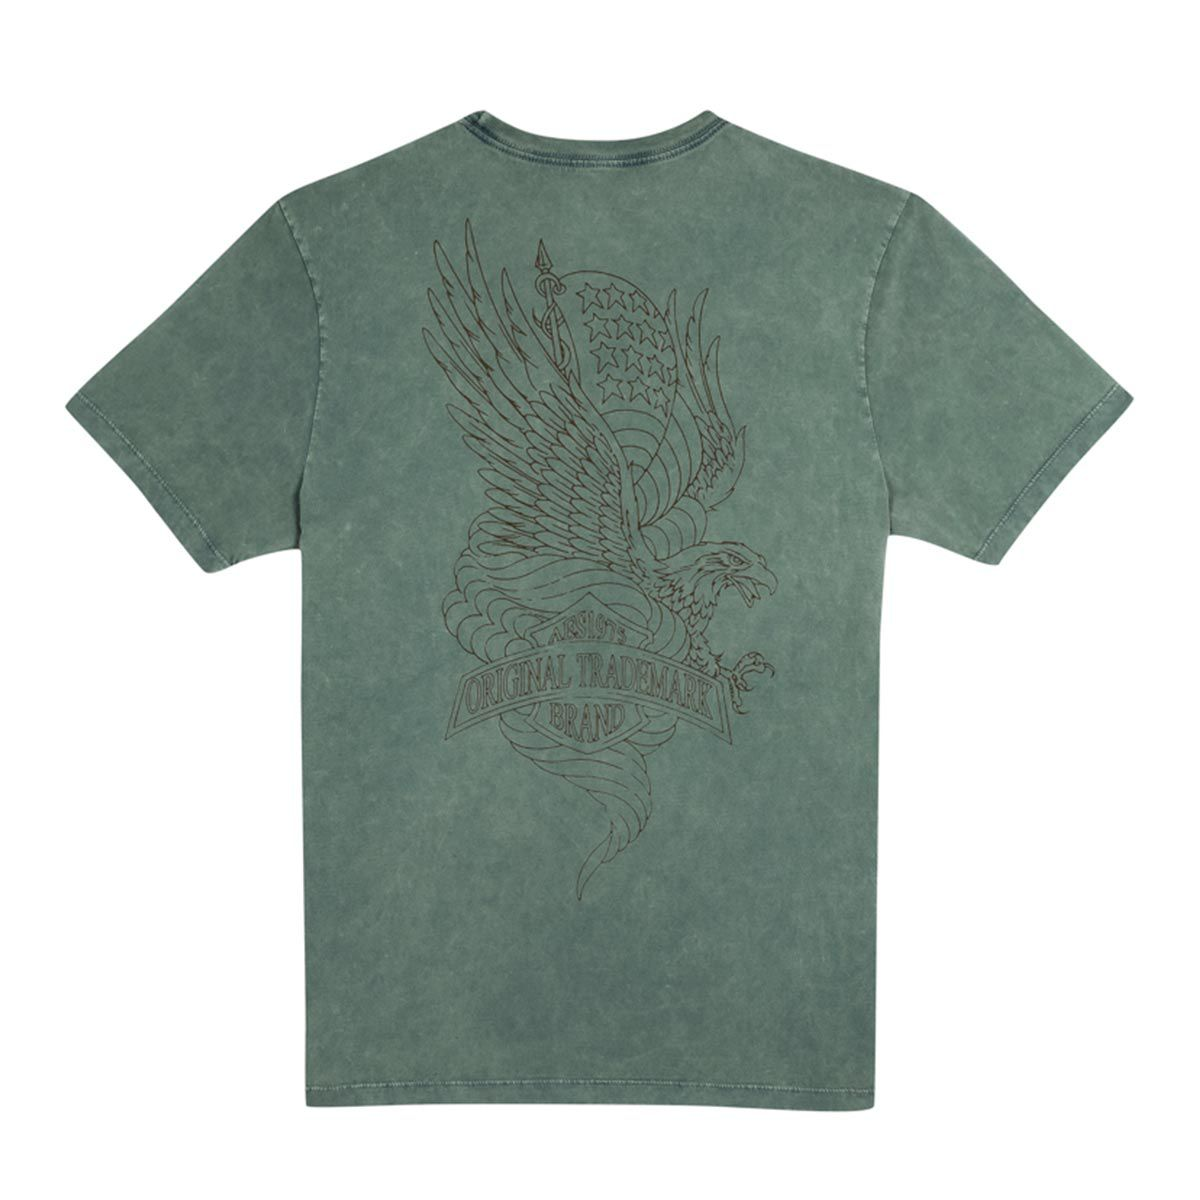 Camiseta AES 1975 Eagle Flight